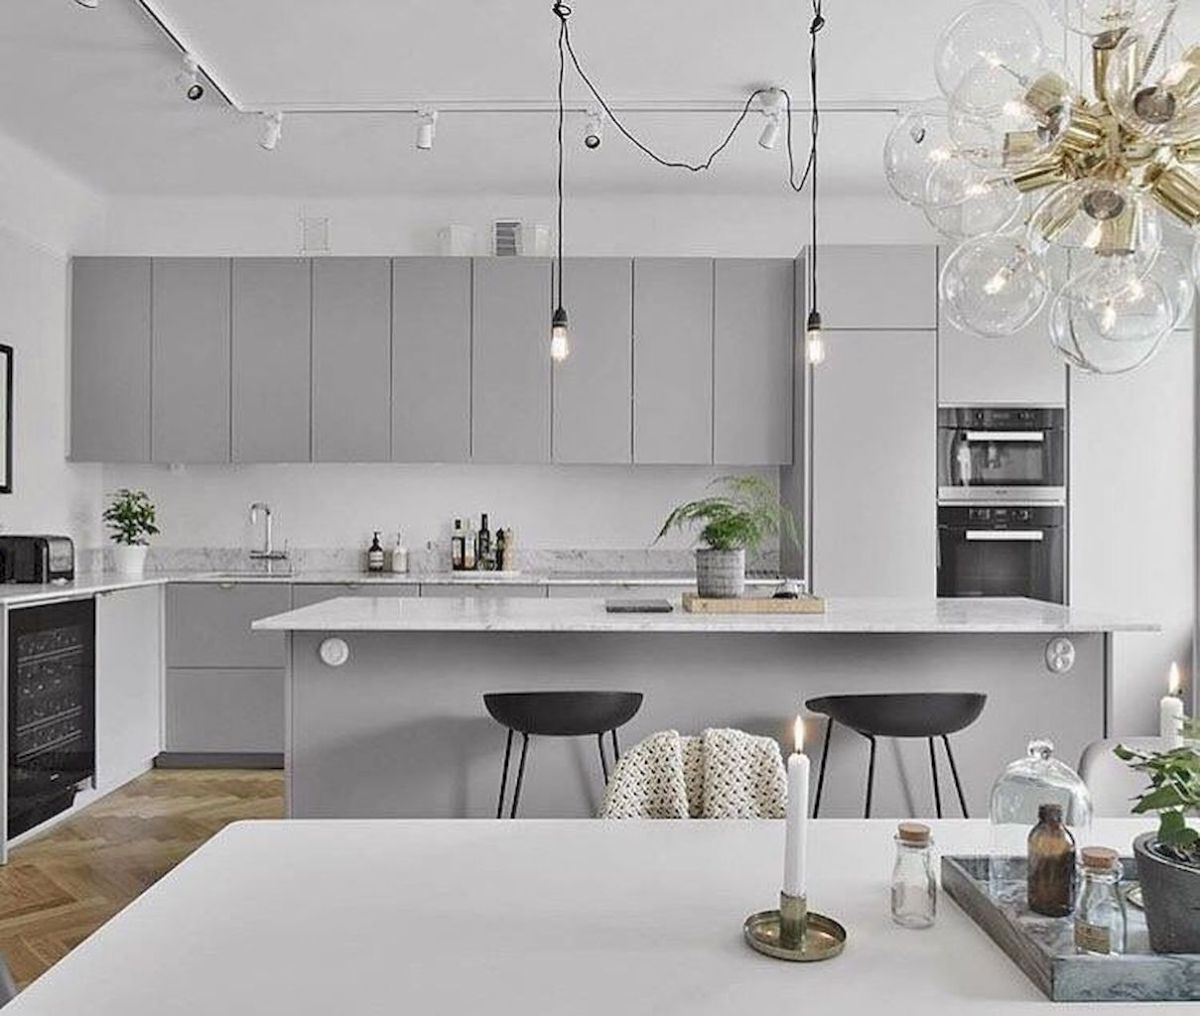 Awesome Kitchen: Awesome Scandinavian Kitchen Remodel (70